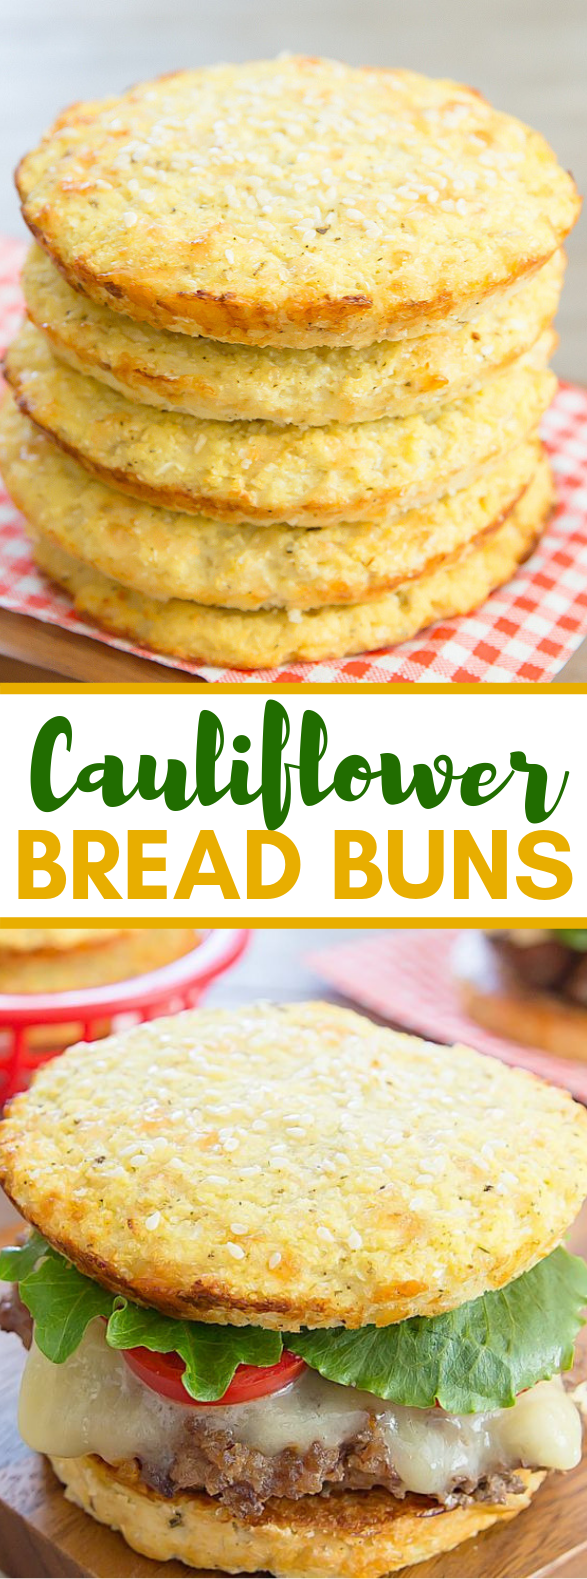 CAULIFLOWER BREAD BUNS #vegetarian #lowcarb